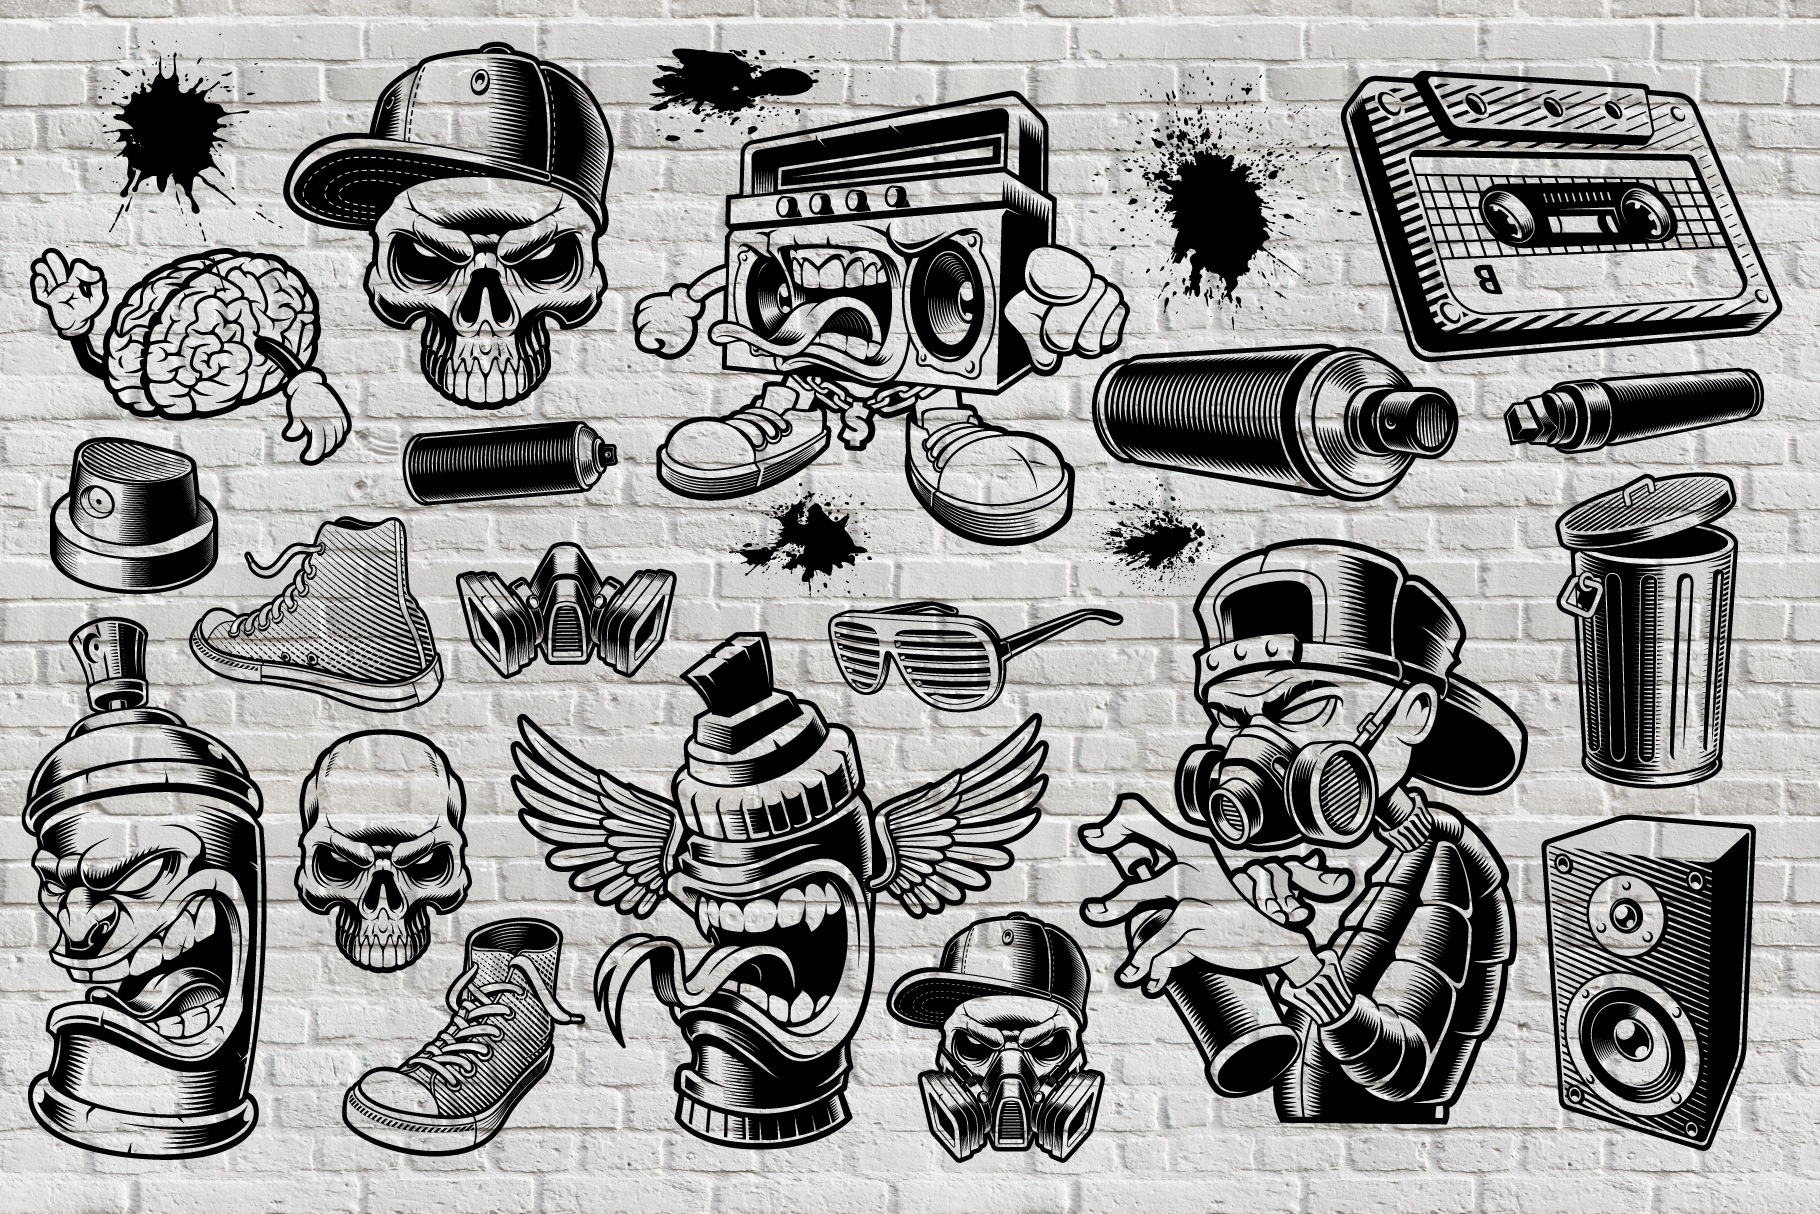 Graffiti Vectors Bundle example image 4